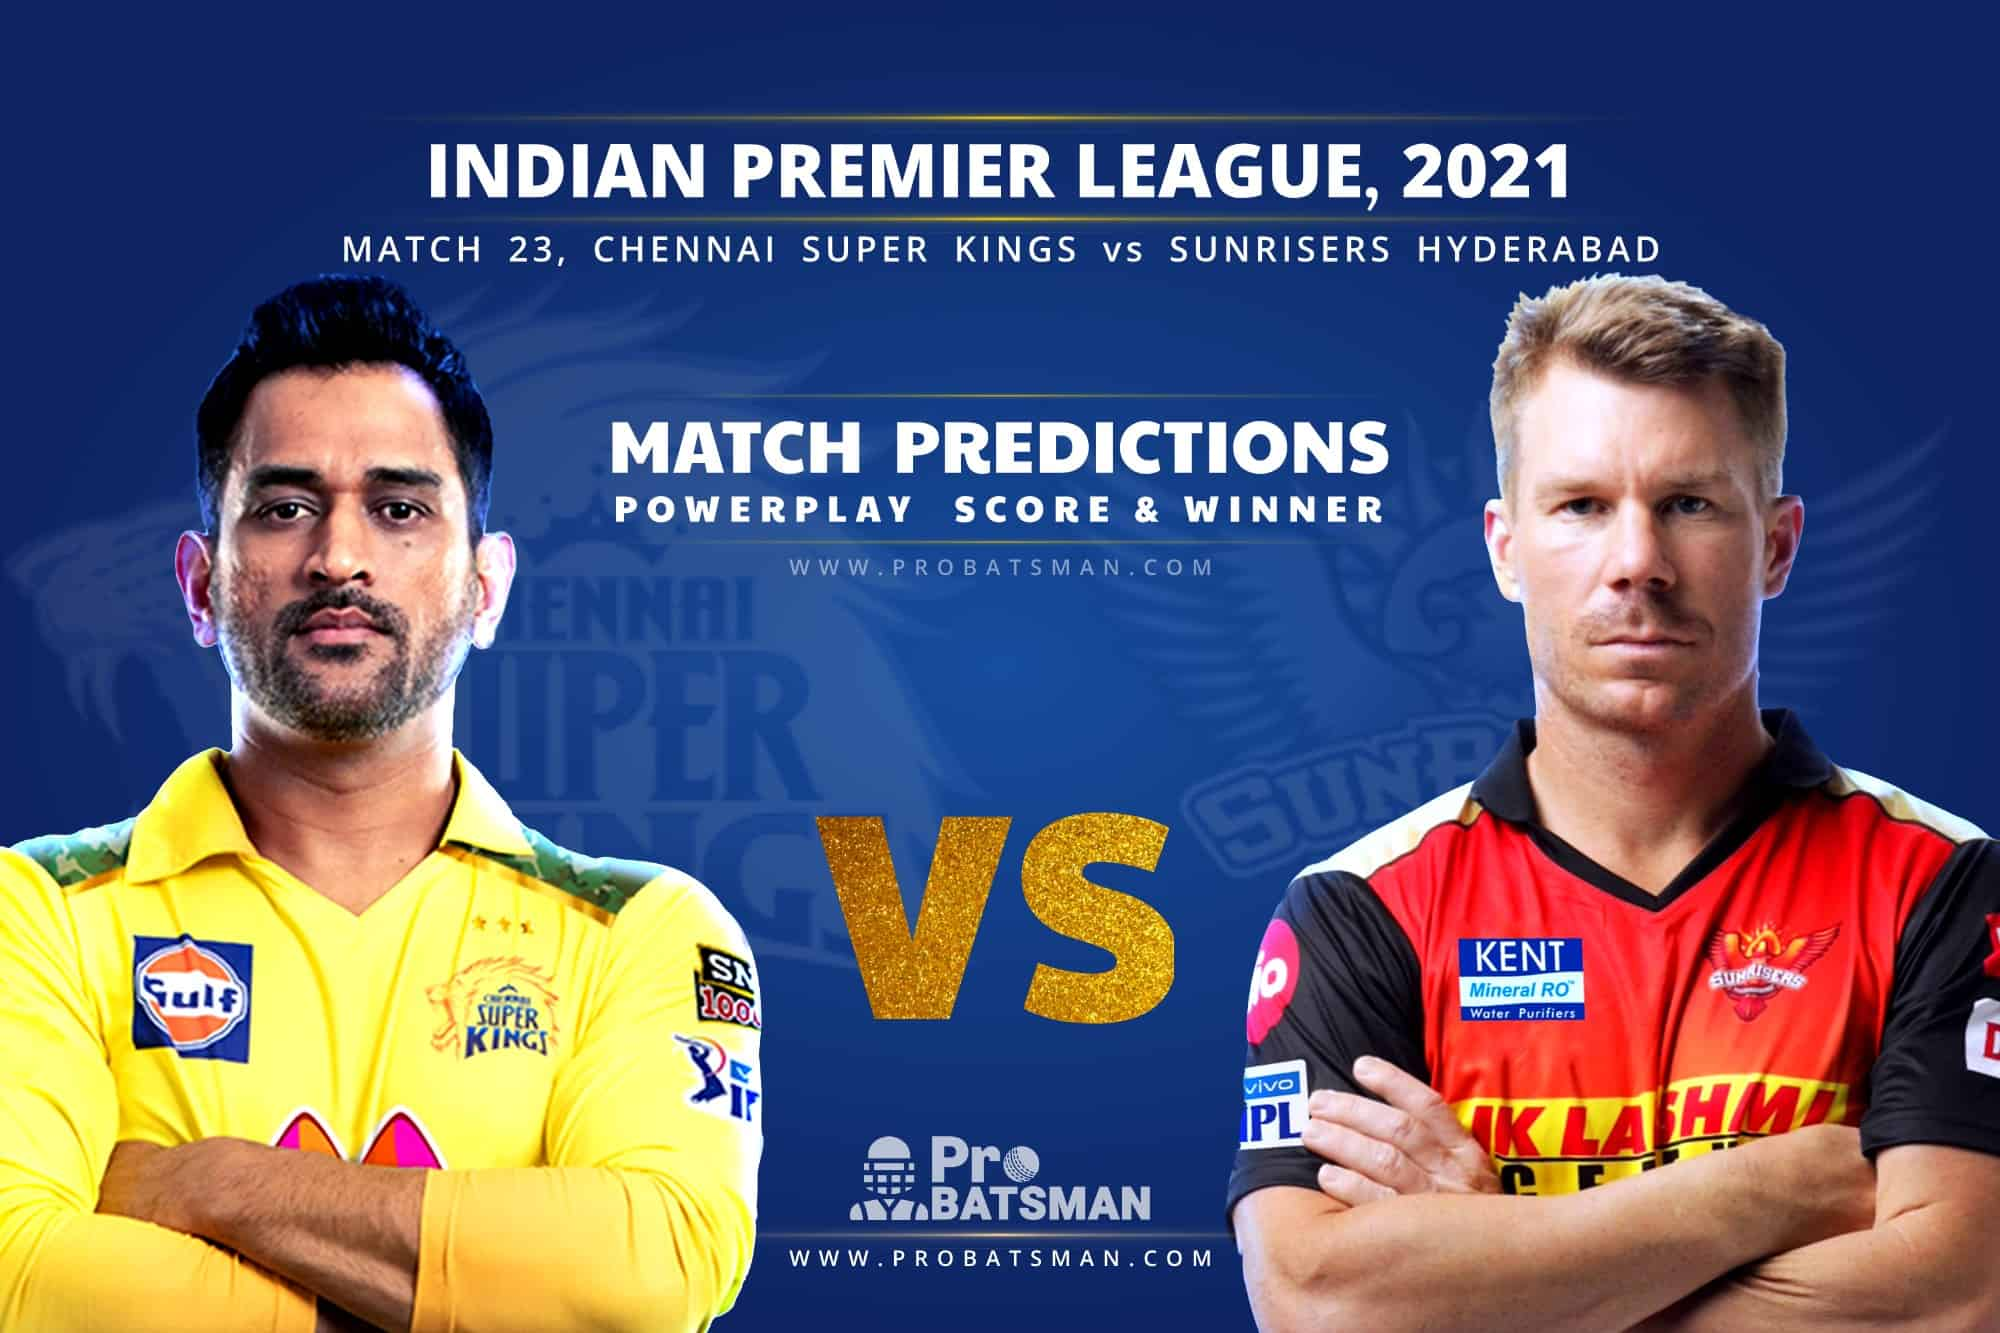 Watch iPL Live (2021) – CSK vs SRH [Chennai Super Kings vs Sunrisers Hyderabad] Hindi LiveTV